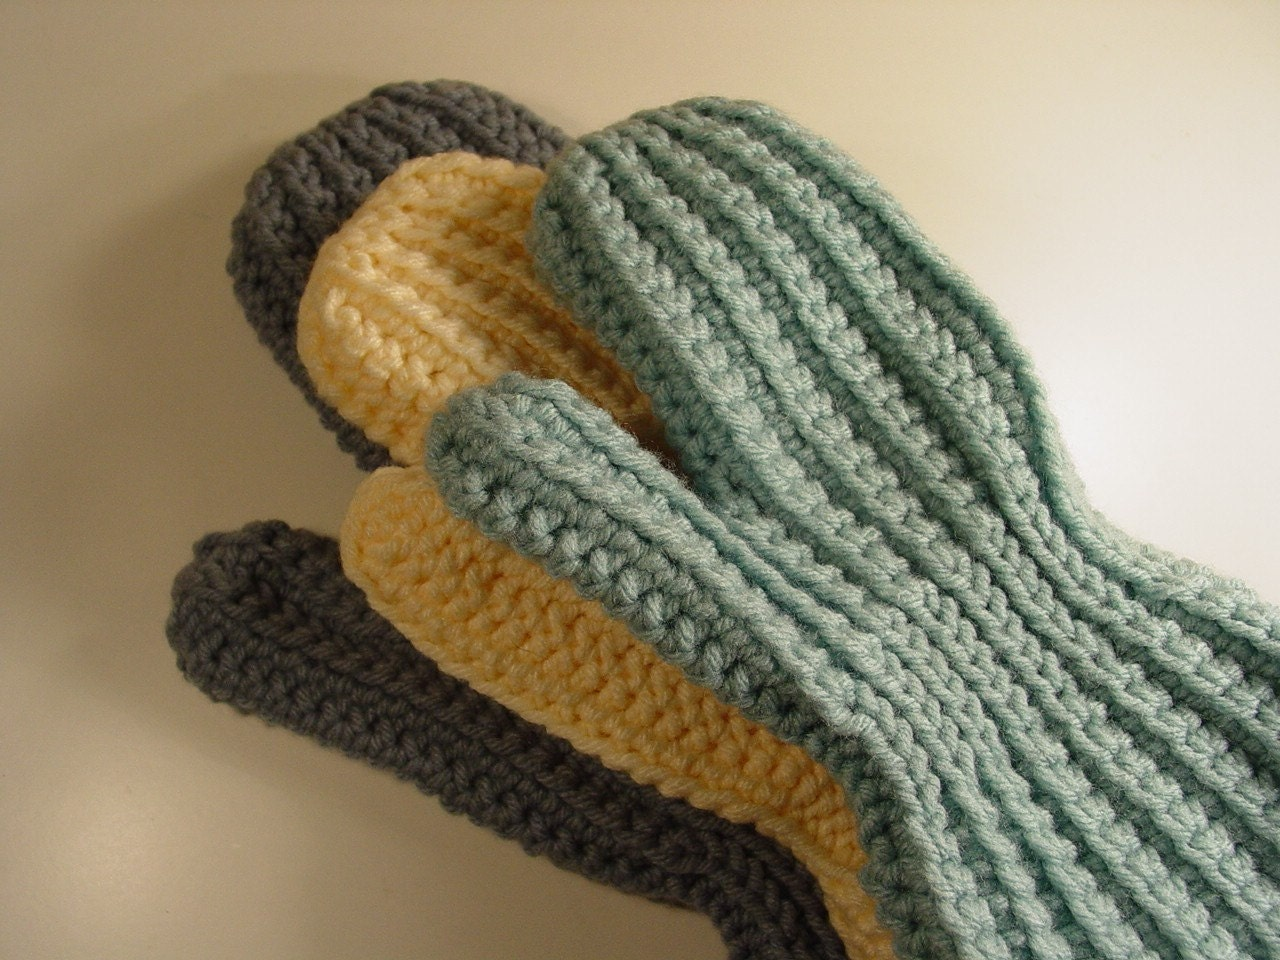 Crochet Mitten Pattern : Easy Sideways Crochet Mittens 100% Profit donated to by madcowdog